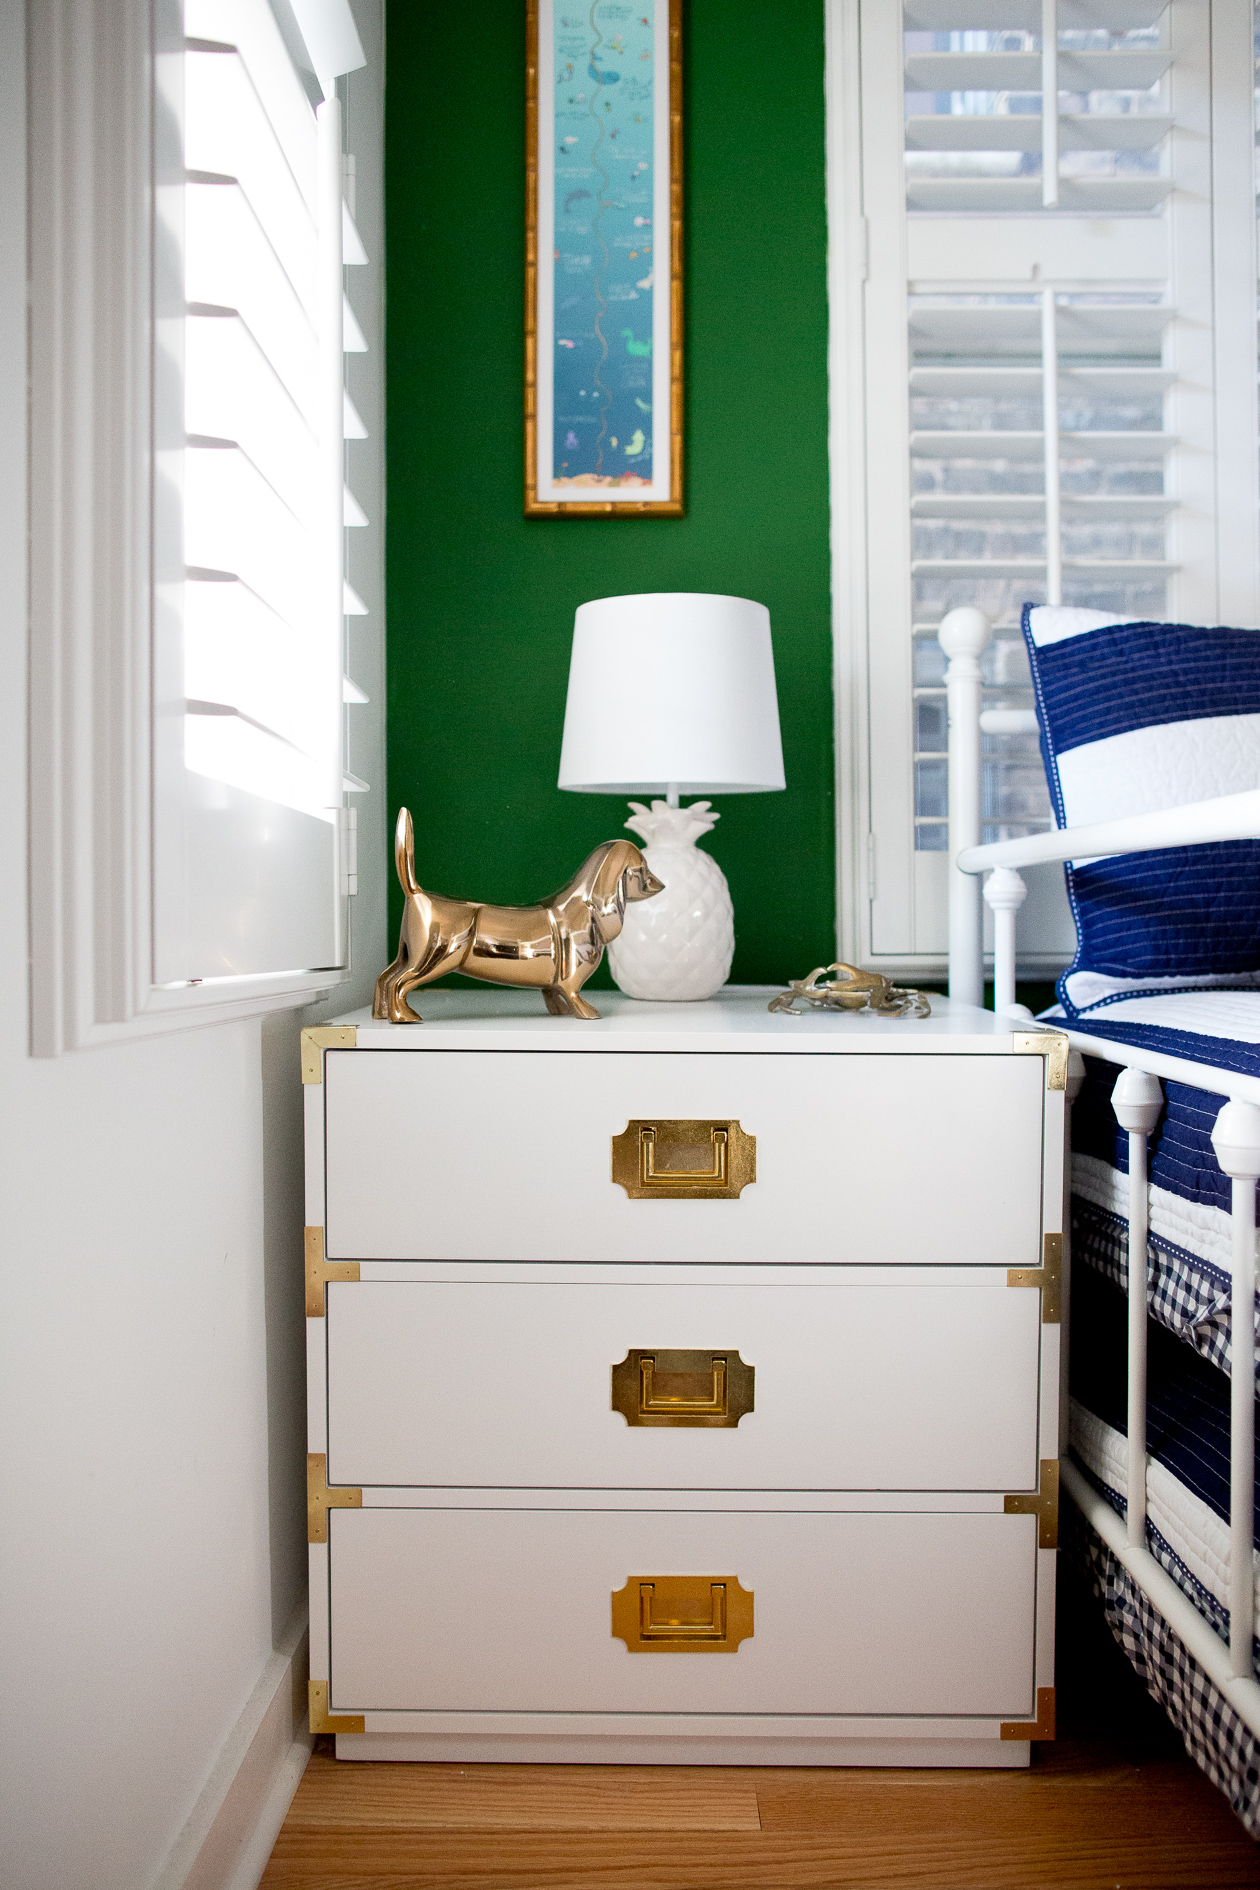 preppy-green-walls-gold-frames-600